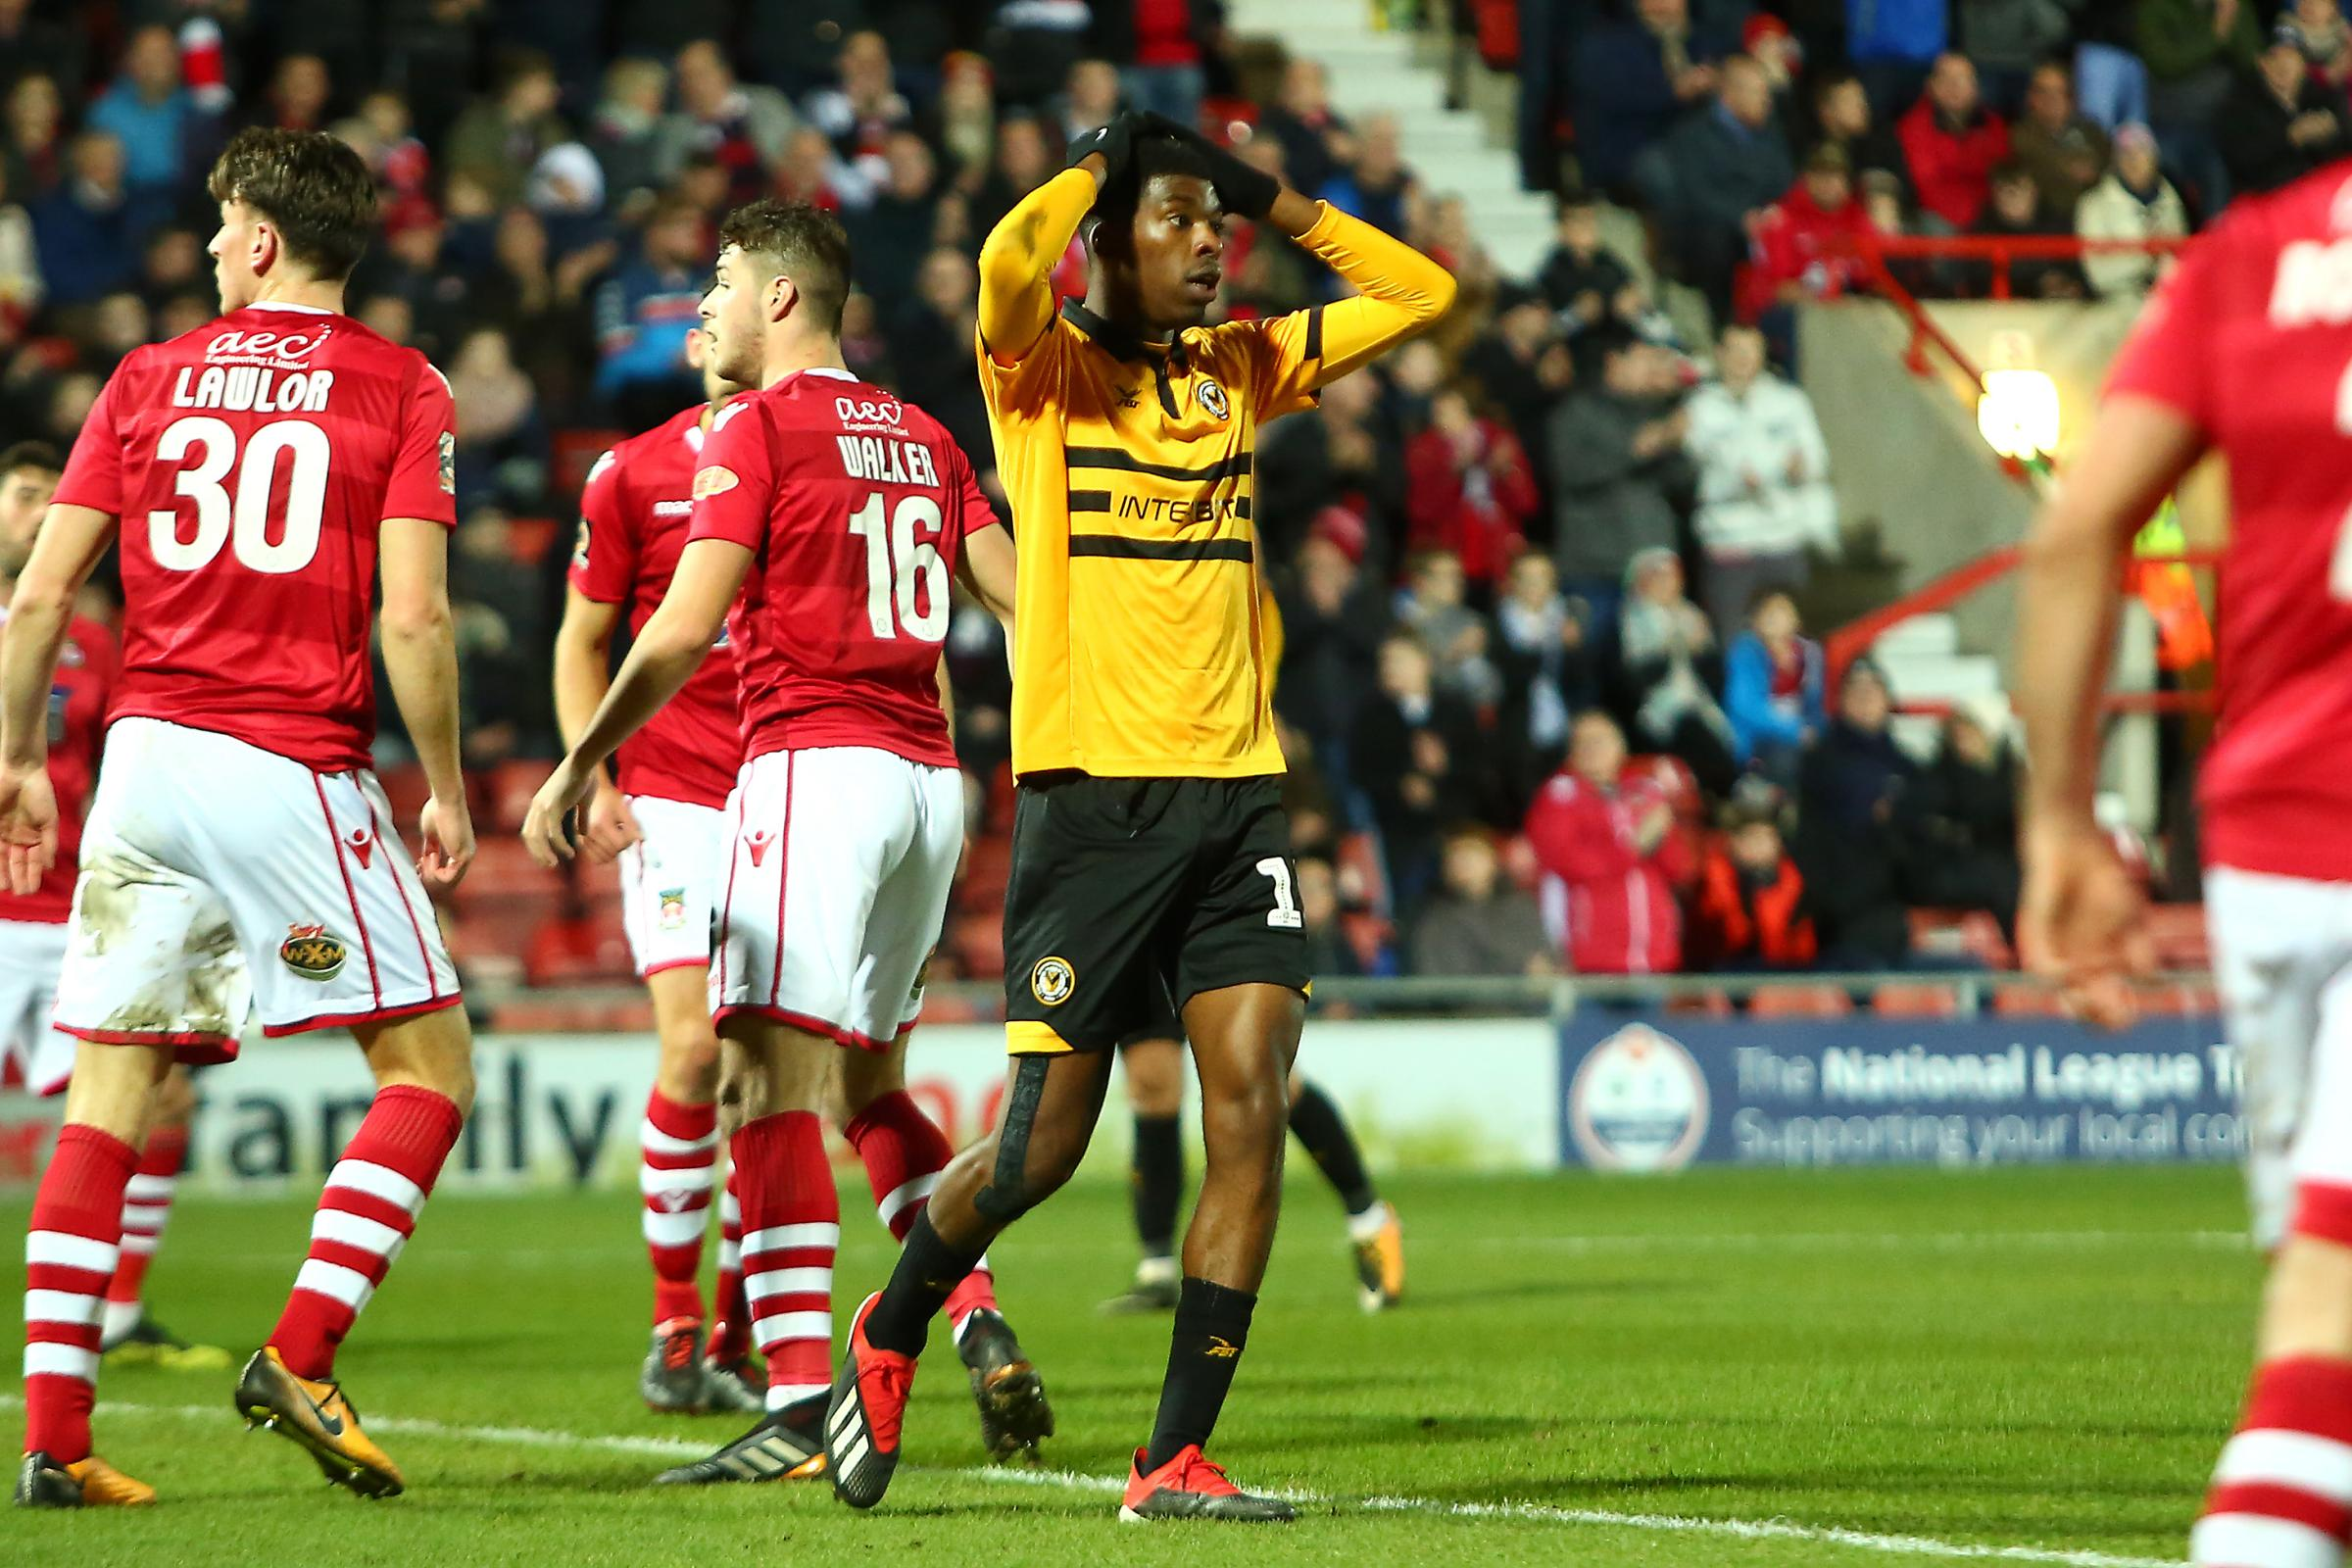 MISS: Newport County midfielder Tyreeq Bakinson squandered a chance against Wrexham. Pictures: Huw Evans Agency